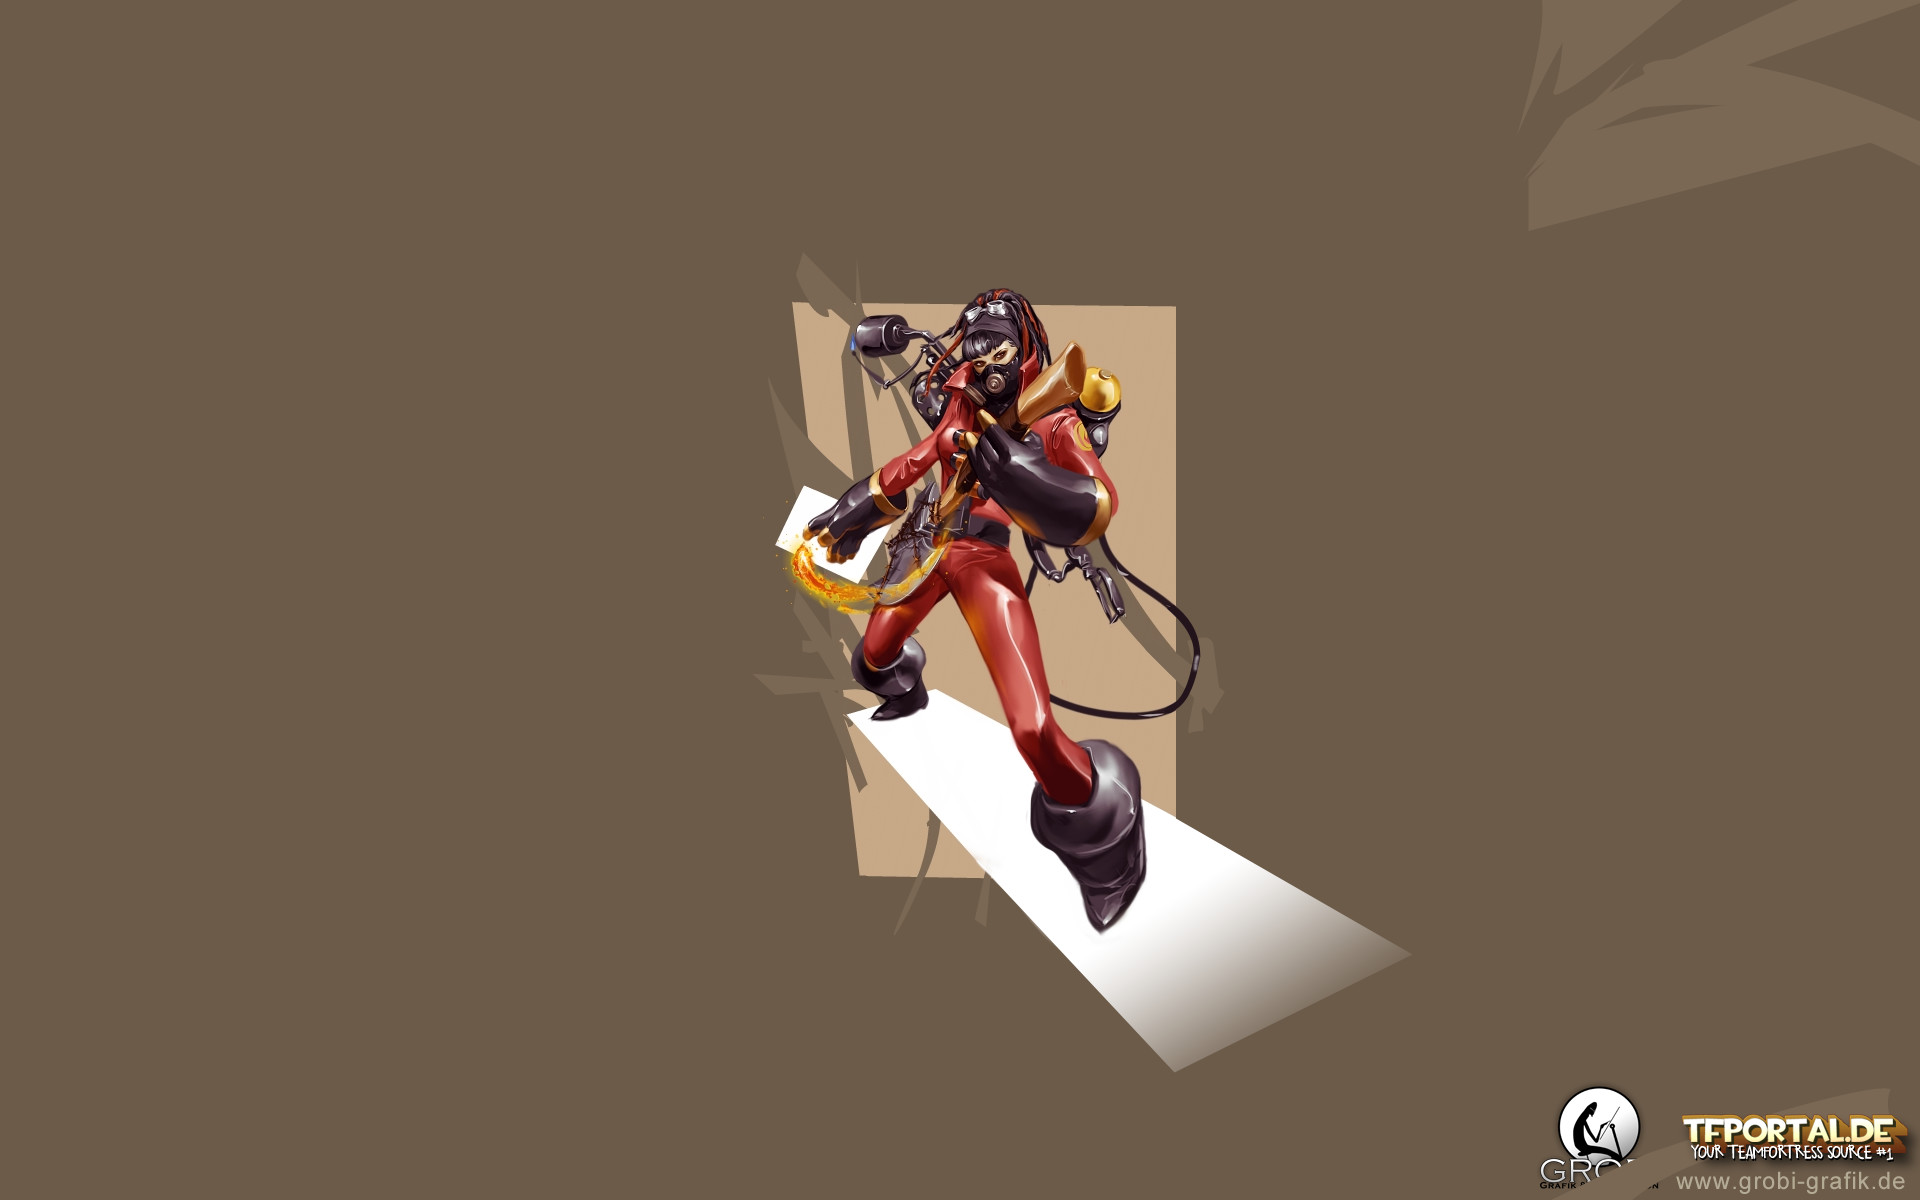 1920x1200 1920x1080. TF2 Girl Soldier Wallpaper